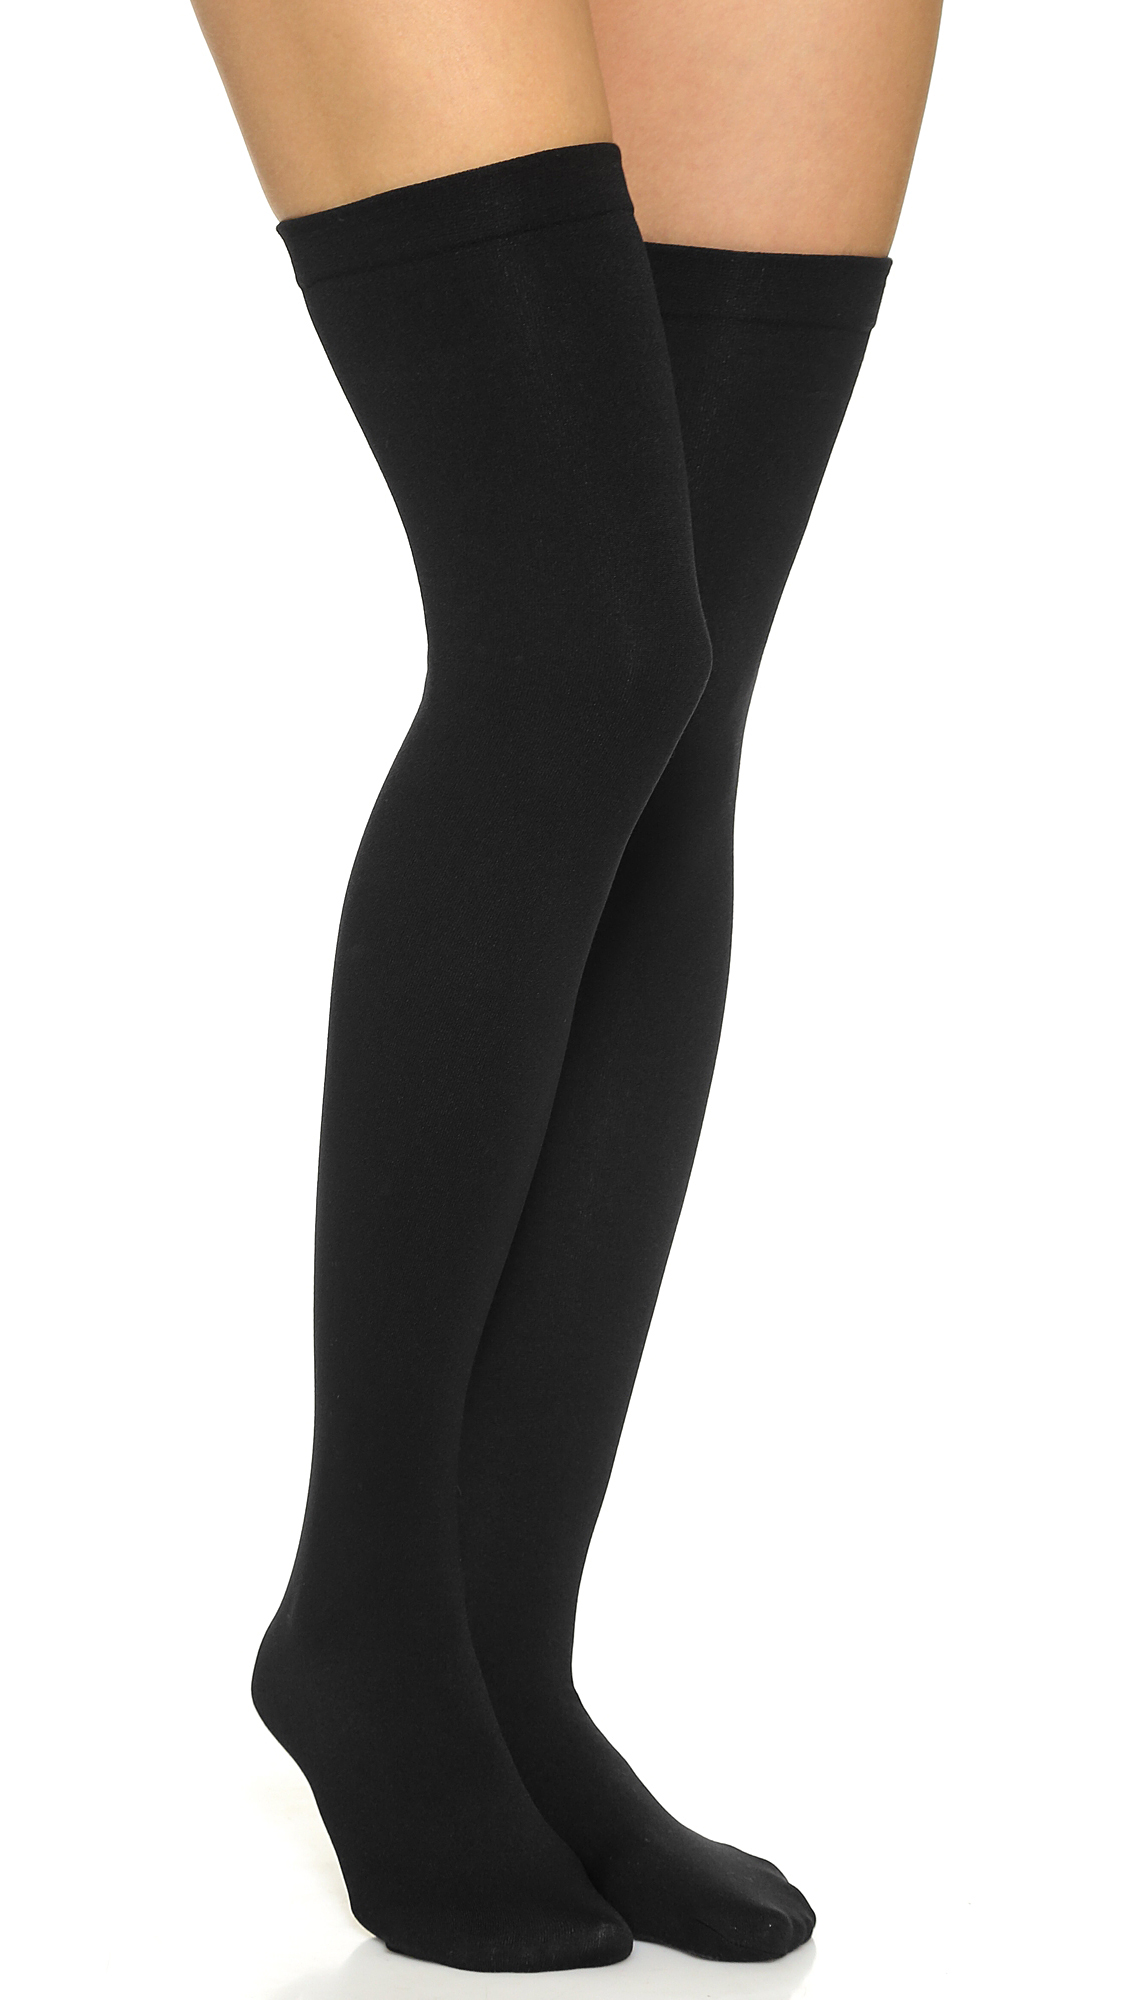 PLUSH Fleece Lined Thigh Highs in Black